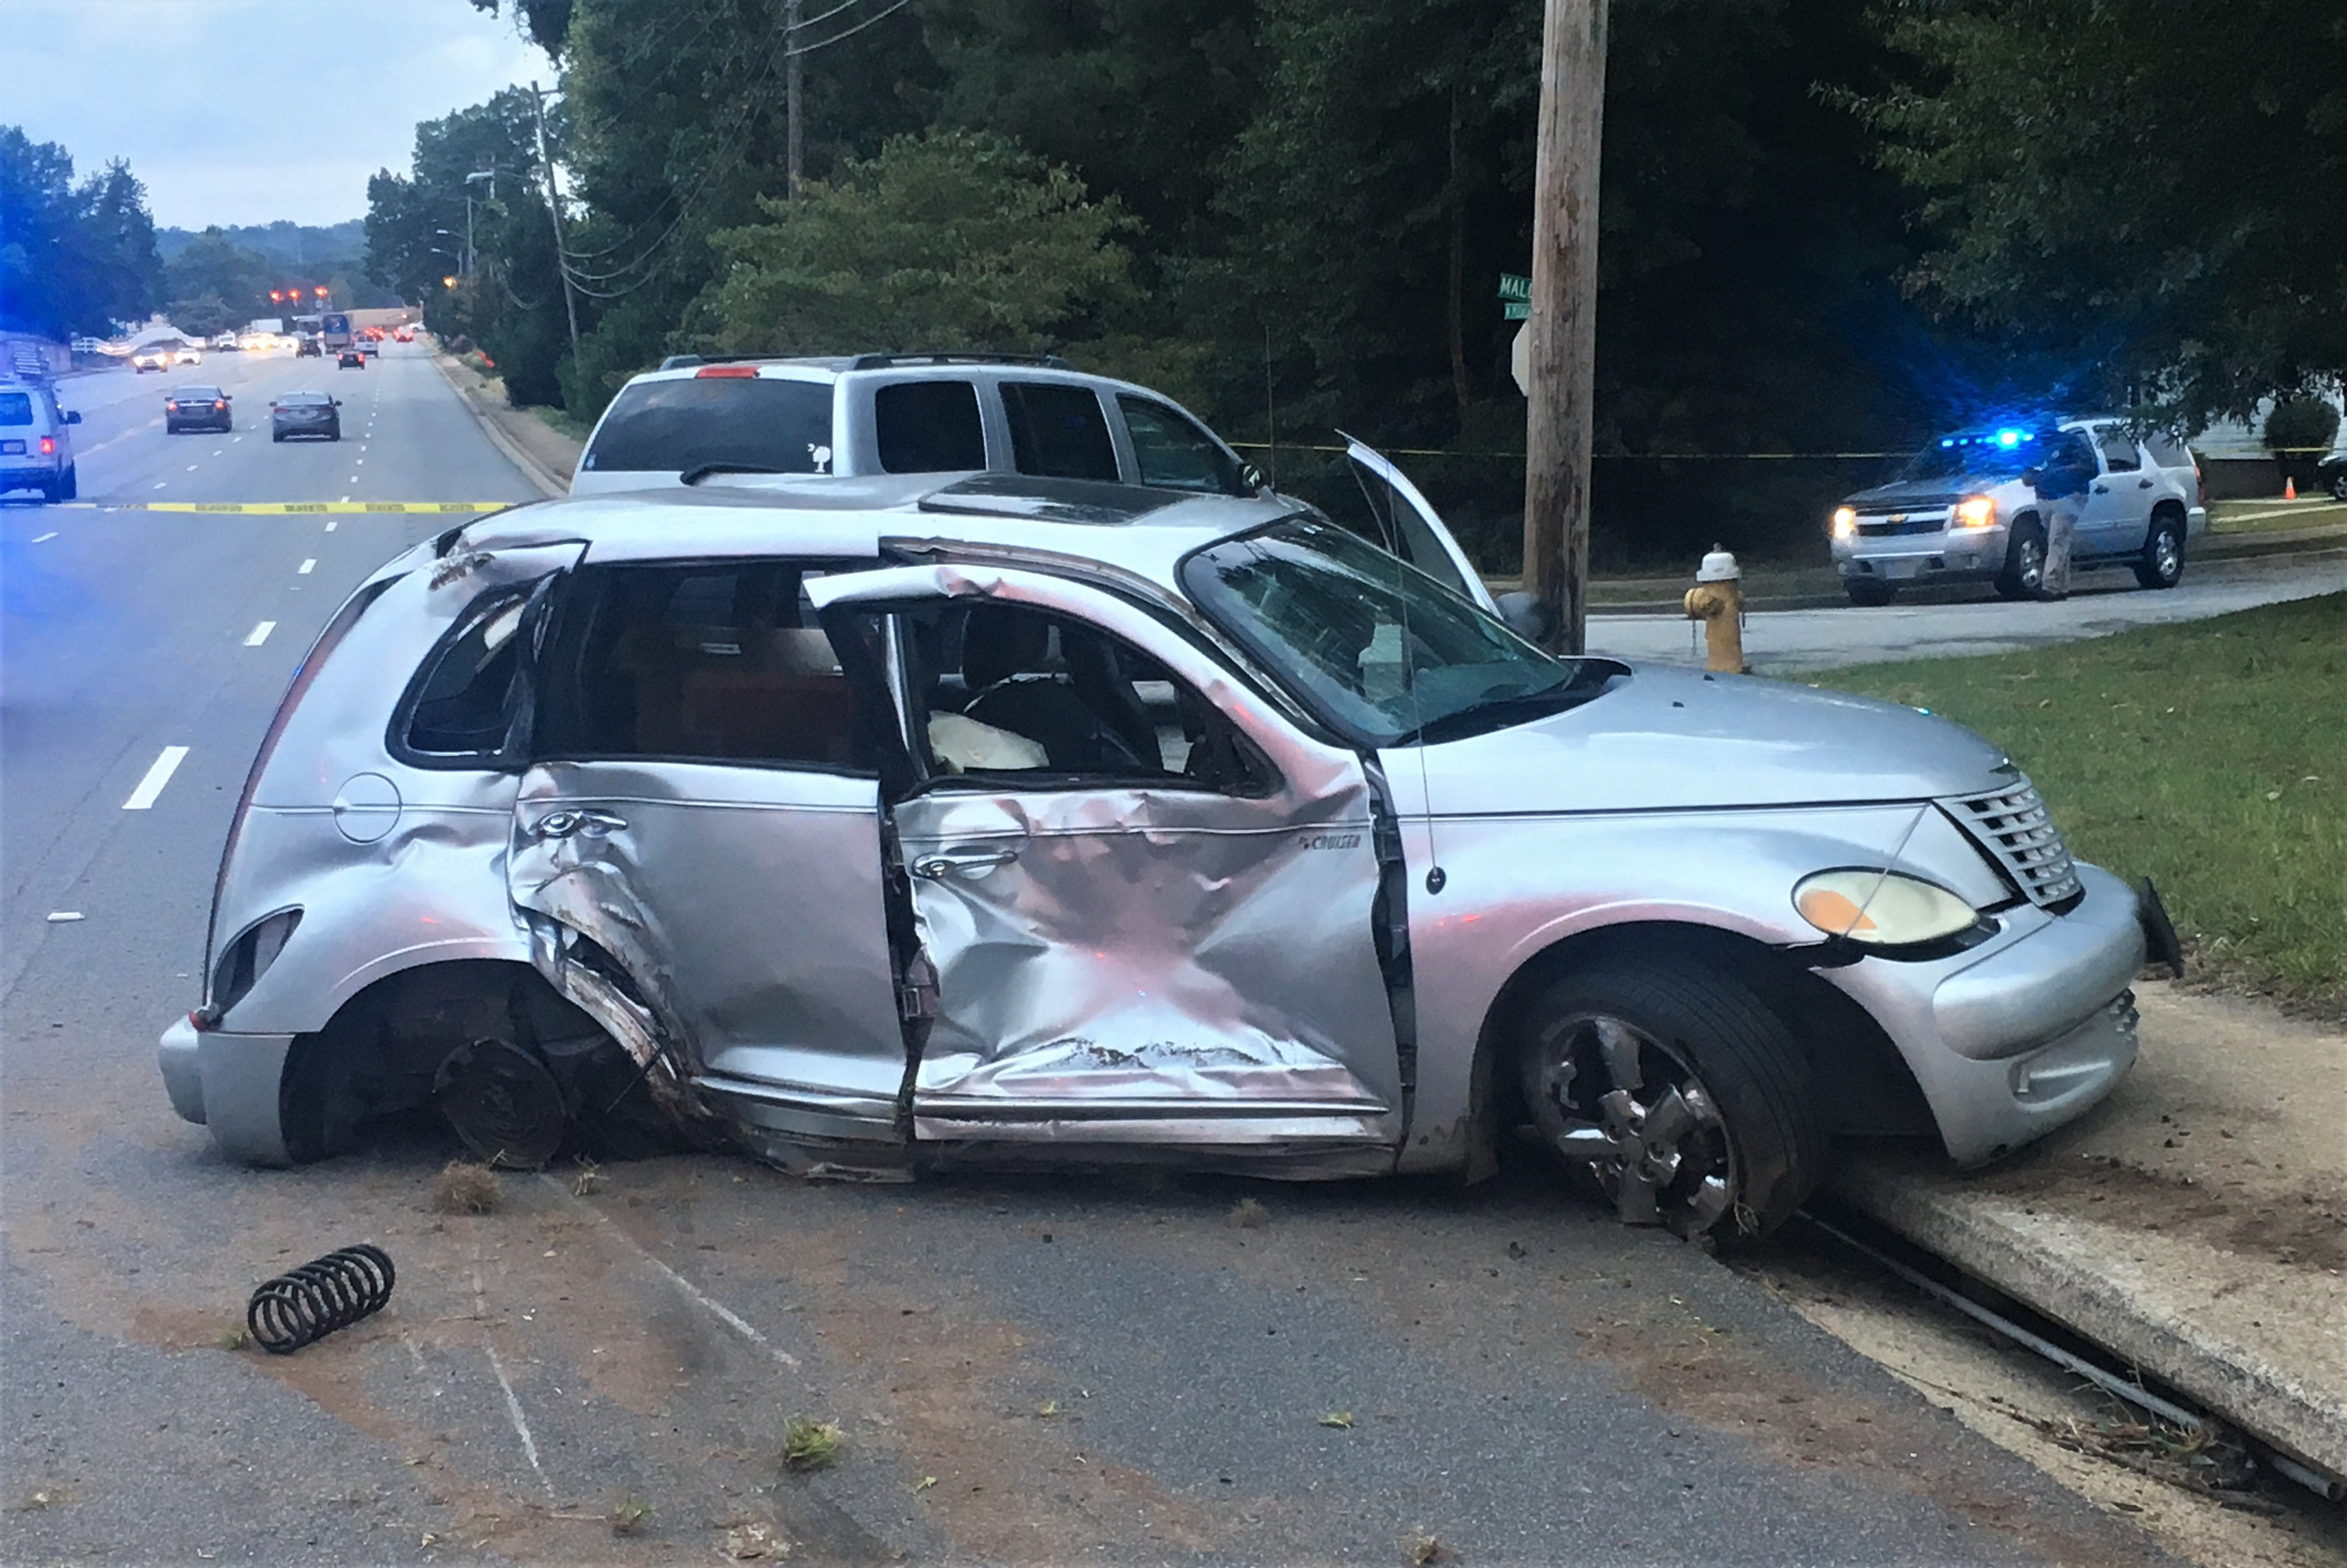 Police: Road rage incident leaves 13-year-old seriously injured, driver was going 75 mph